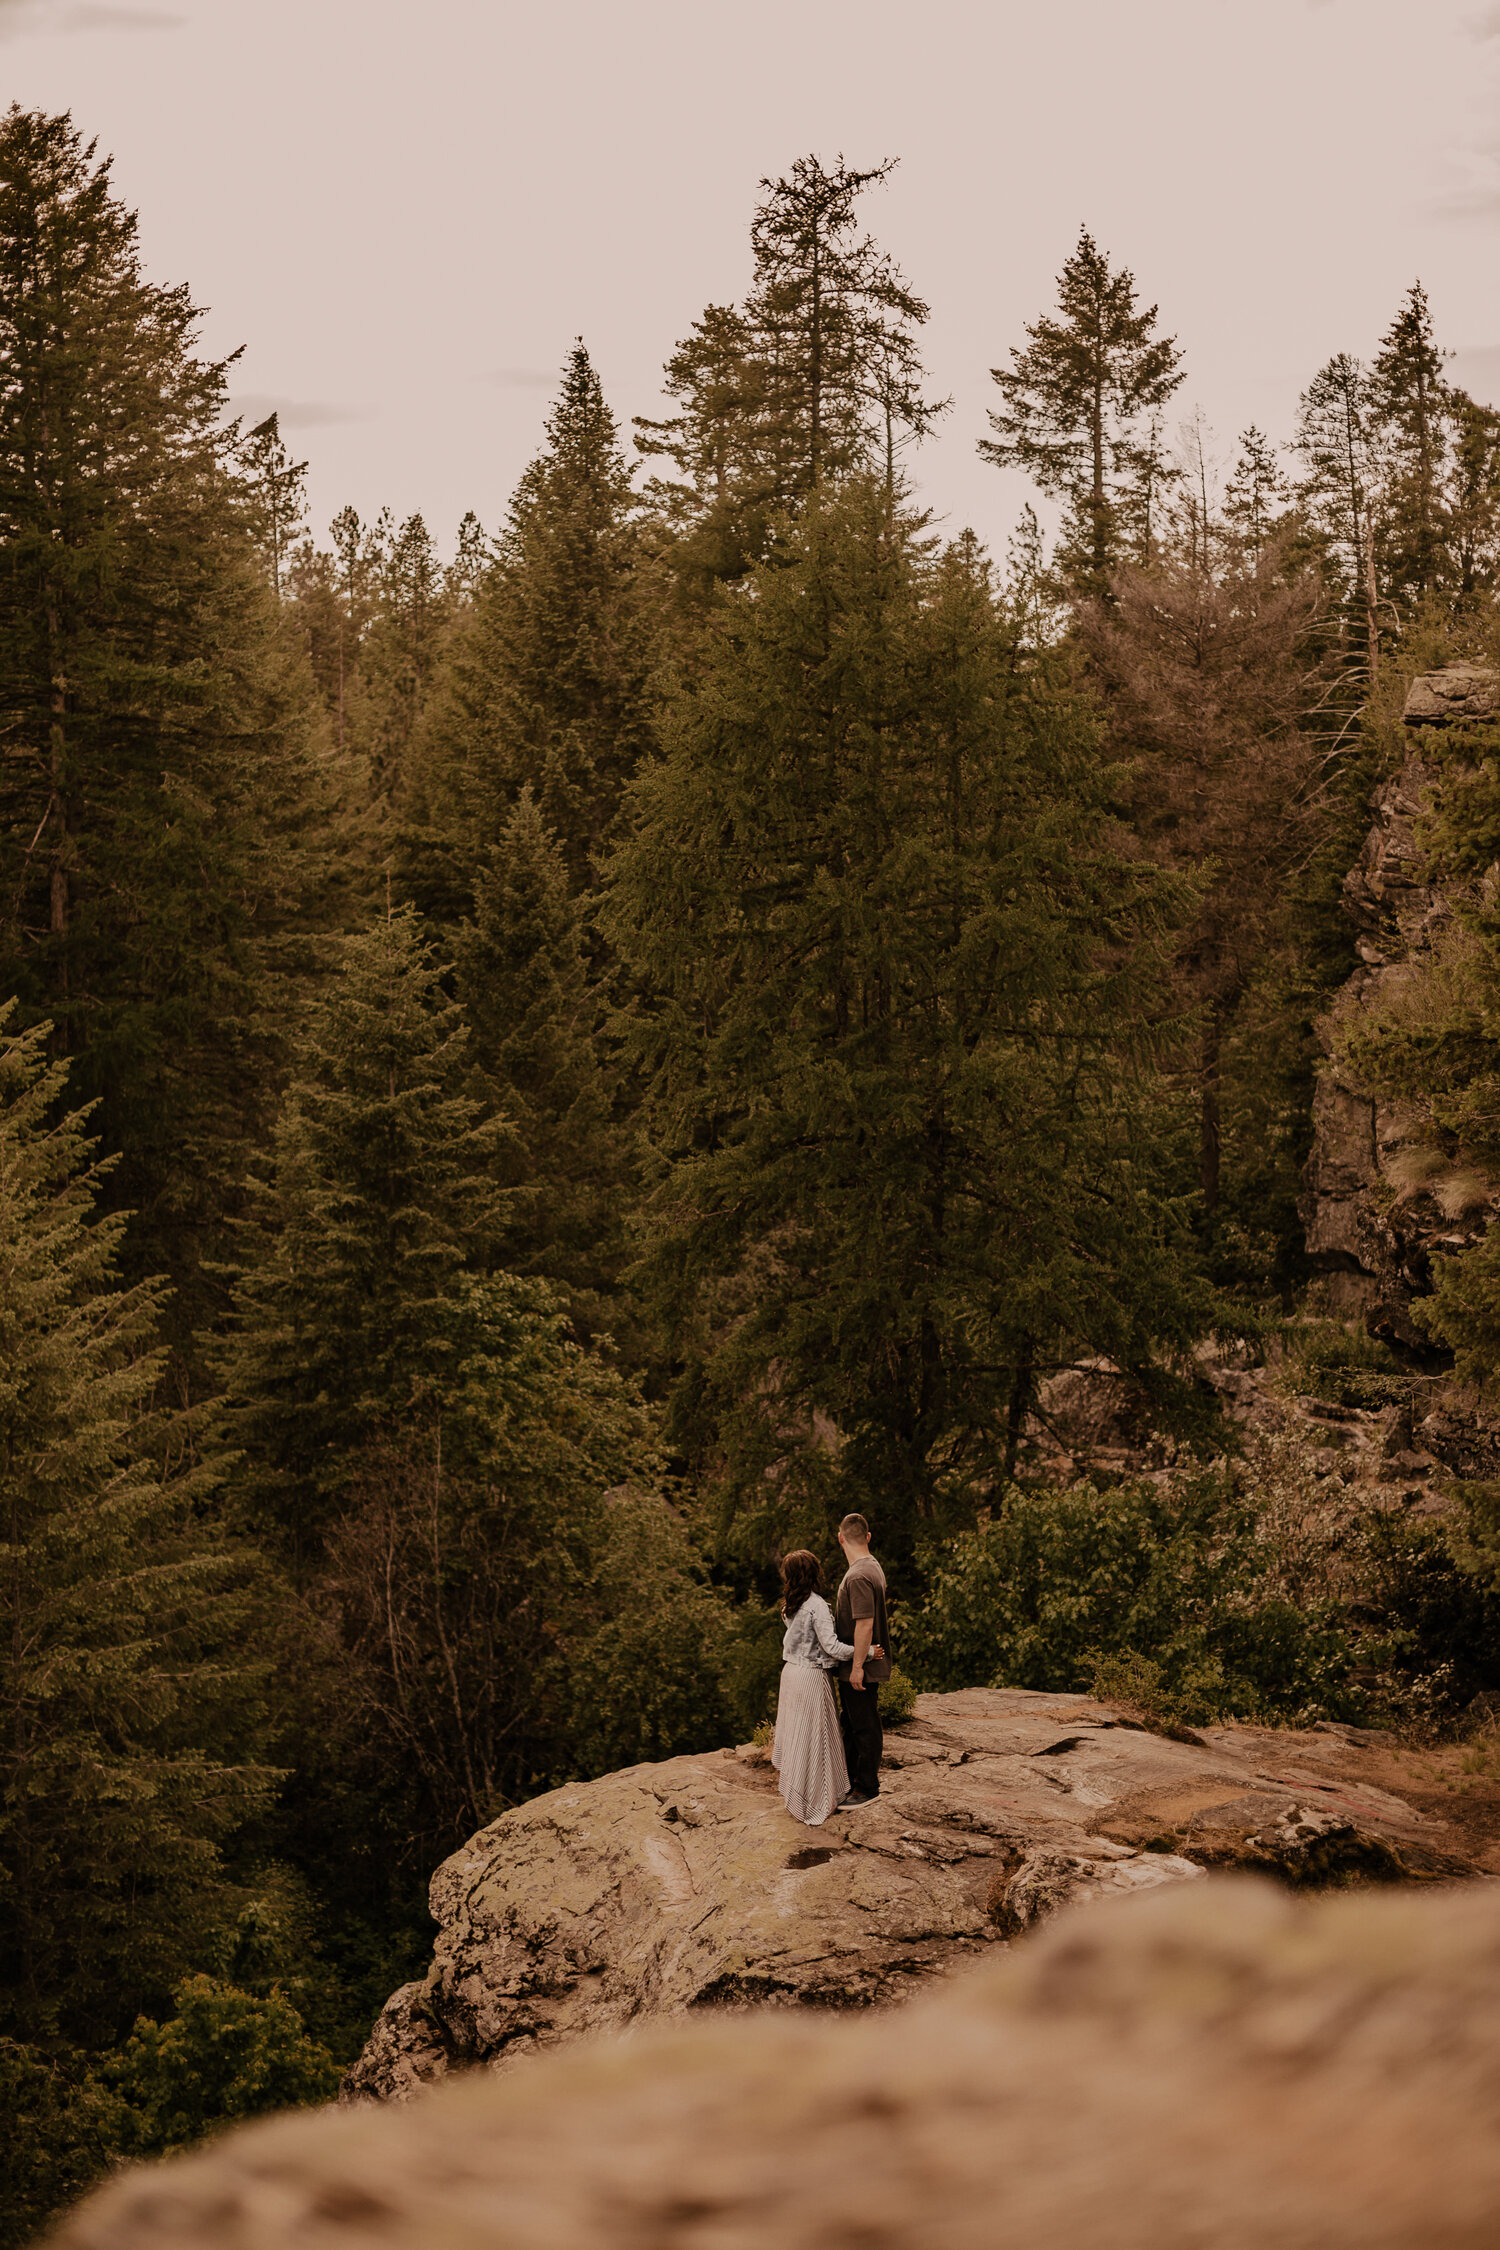 PostFallsRockyMountainEngagement-7163.jpg